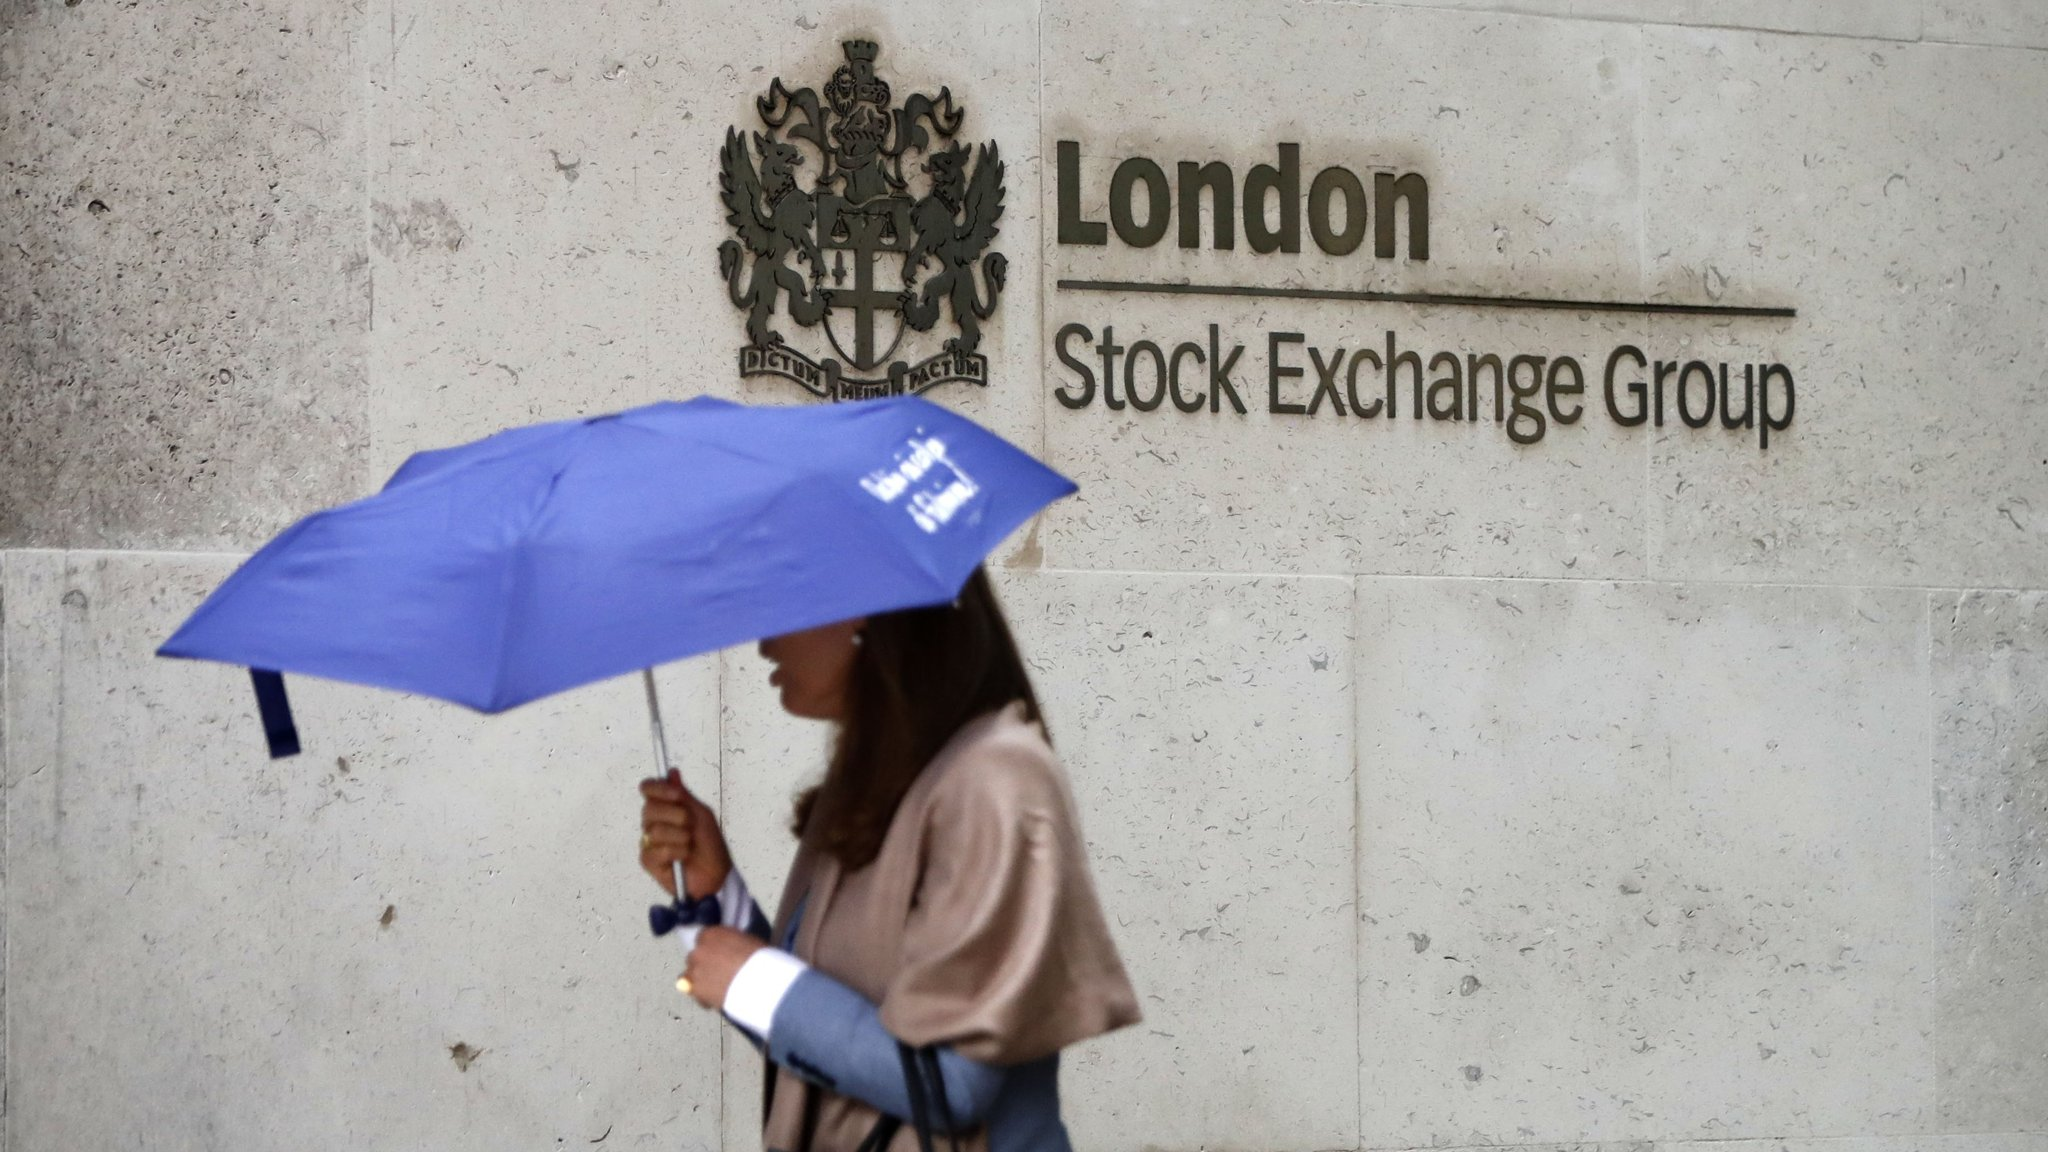 Rolet quits as London Stock Exchange chief after power struggle